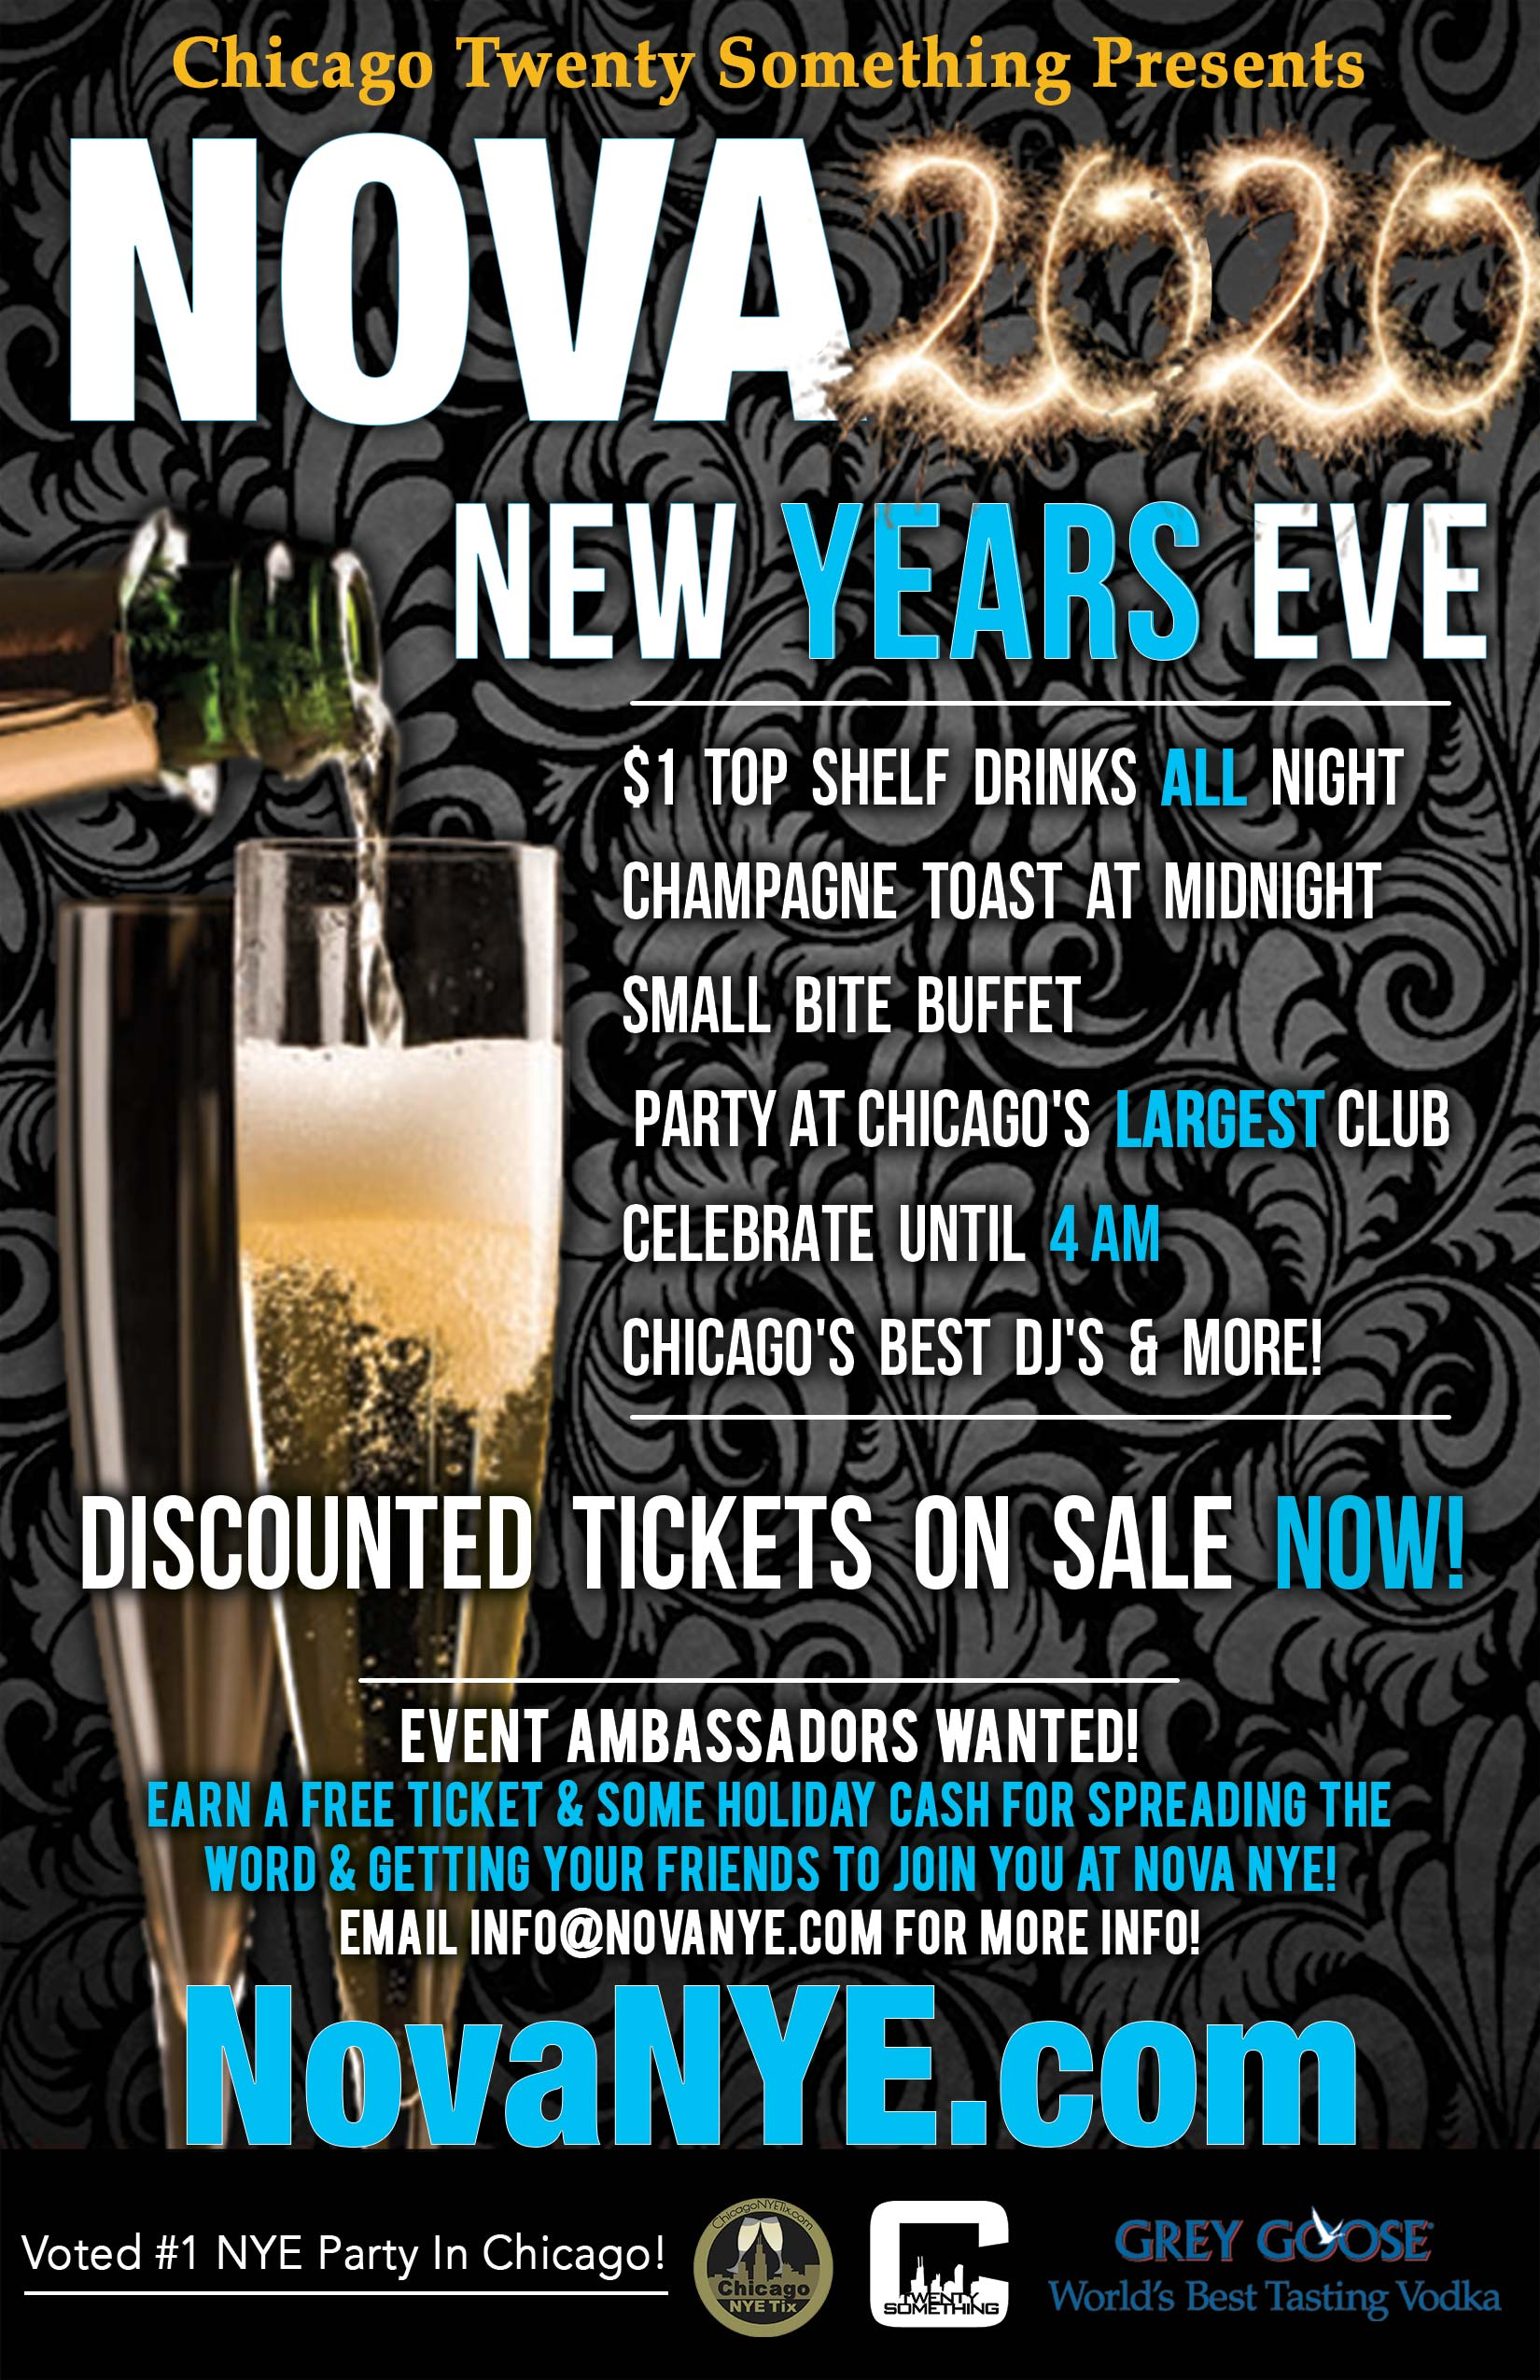 Nova New Year's Eve Party - Tickets include $1 Top Shelf Drinks all night including Belvedere, Crown Royal, Red Bull, etc.